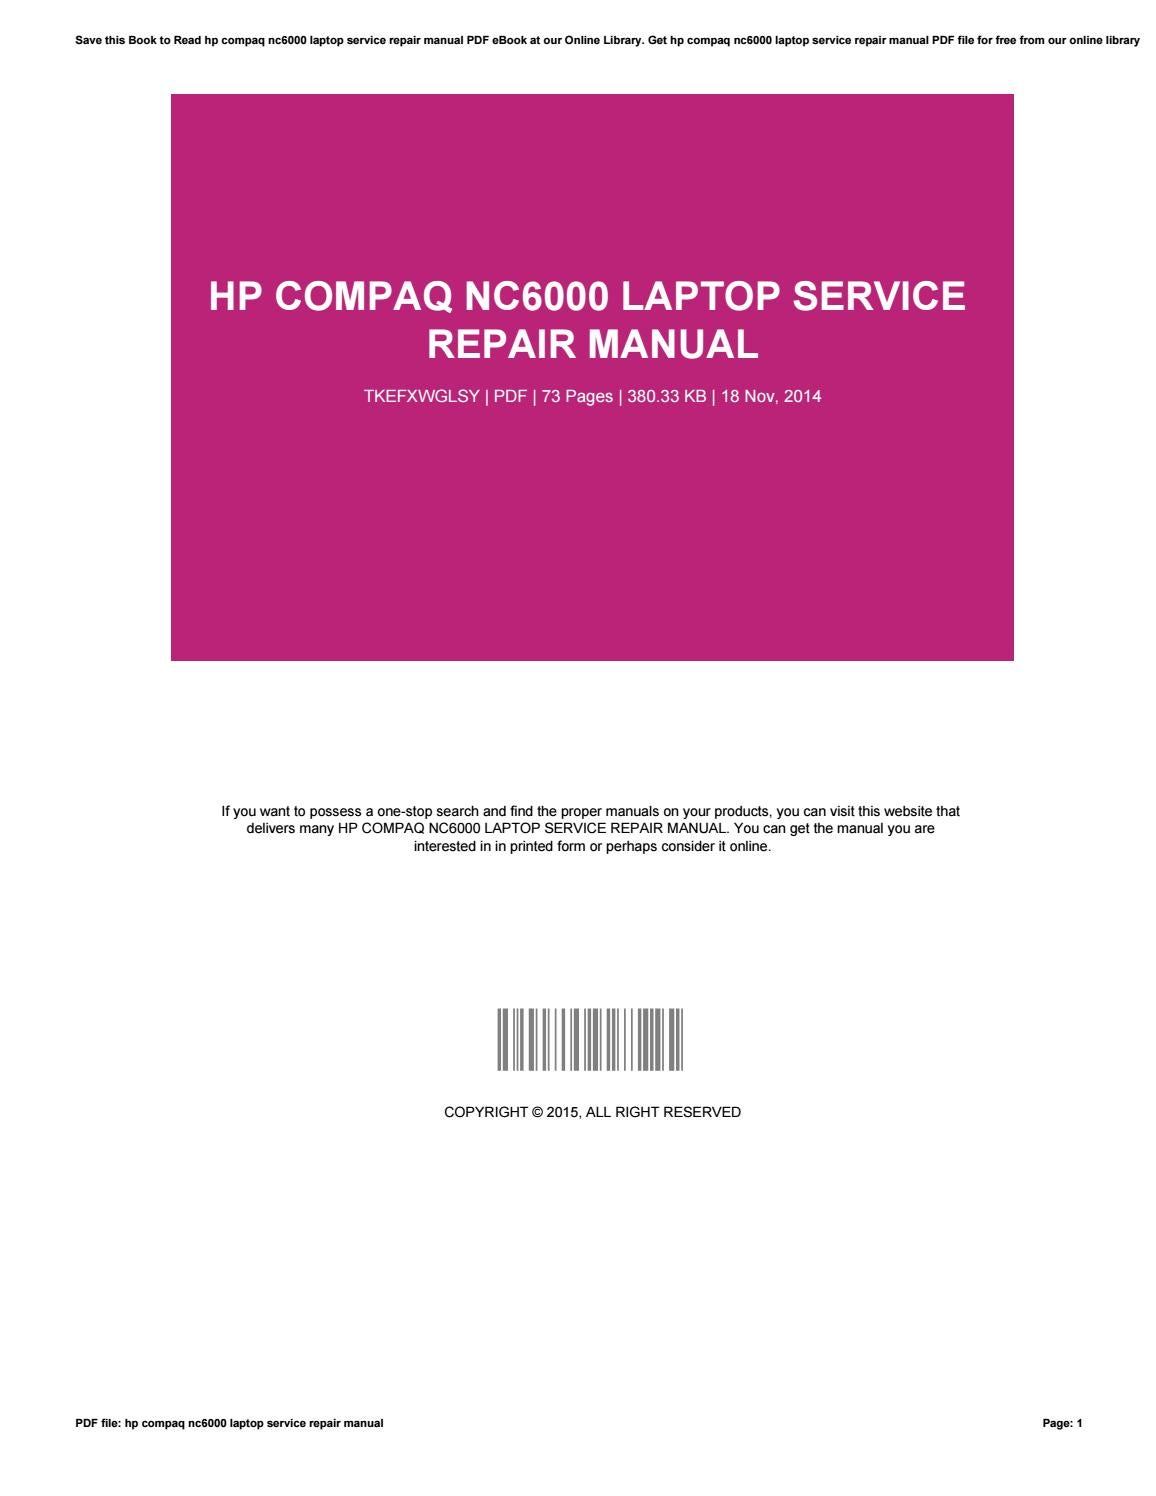 Hp compaq nc6000 laptop service repair manual by PatrickBryant2823 - issuu